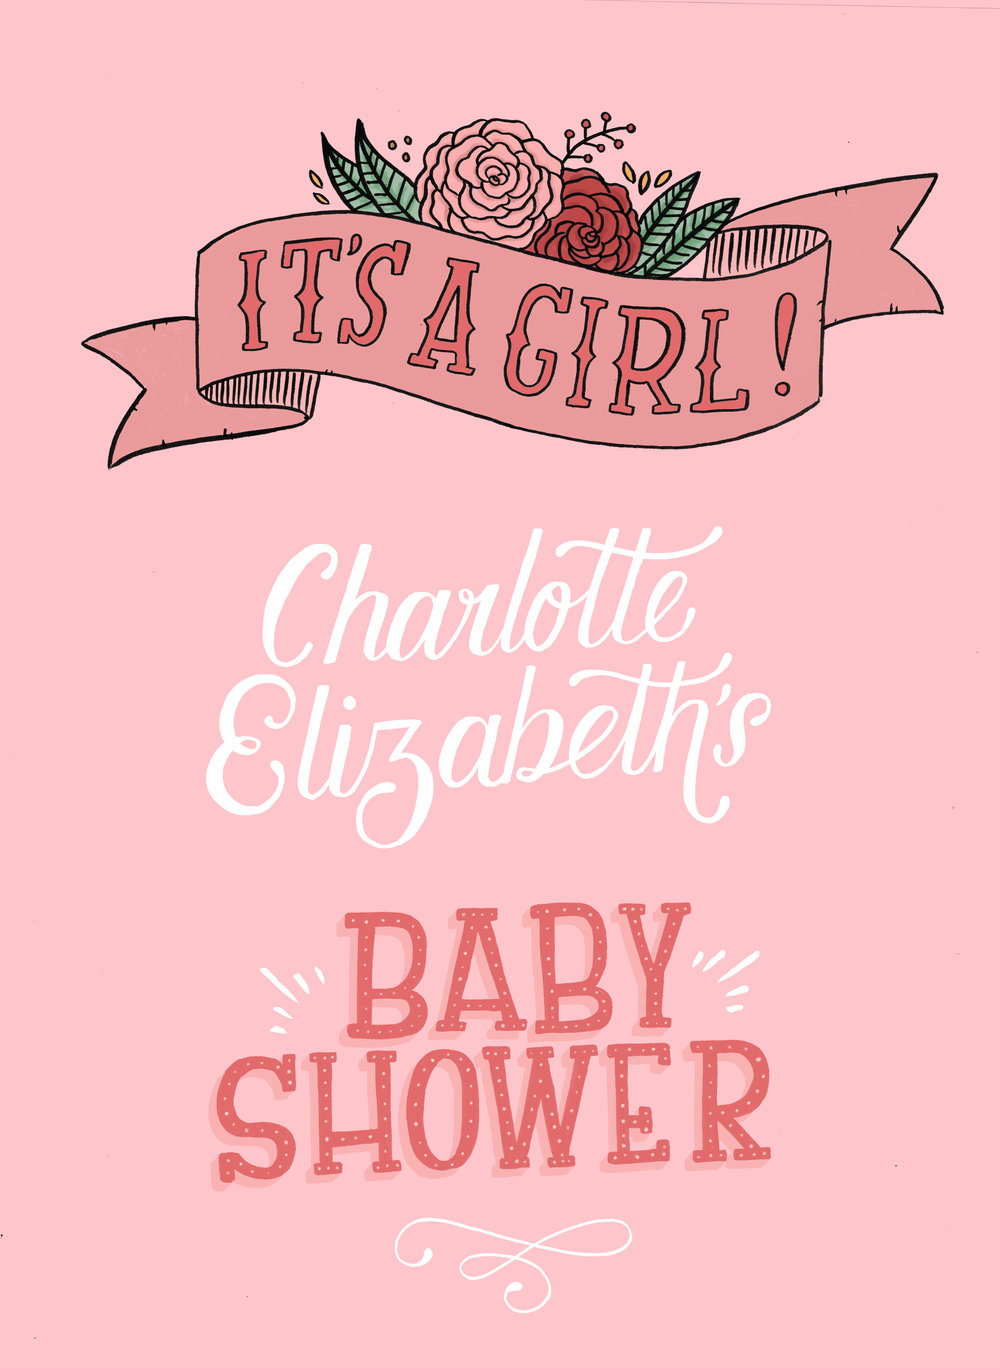 A commissioned poster for a baby shower.